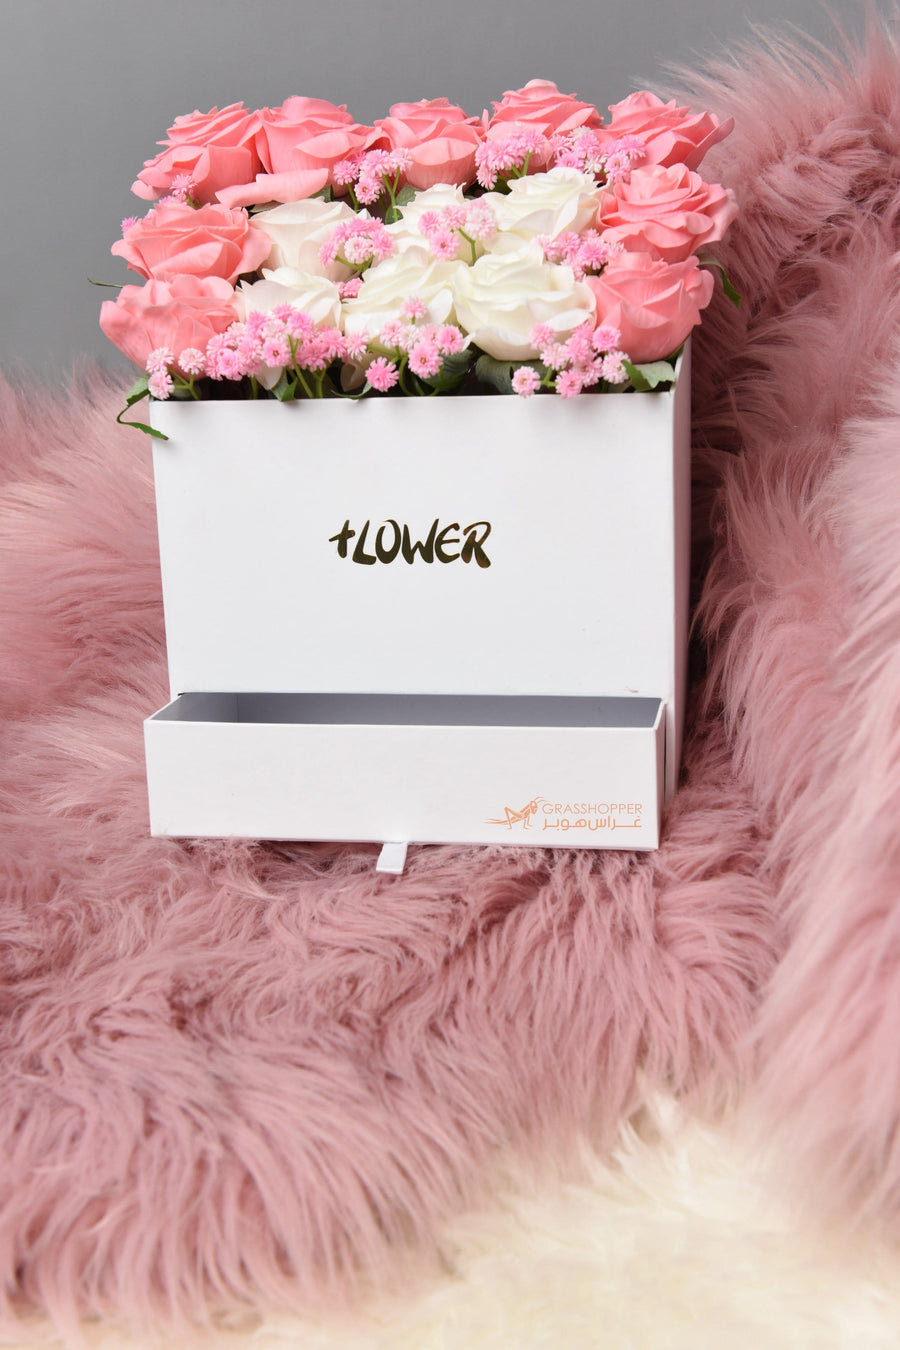 Pretty in Pink Bouquet | Grasshopper